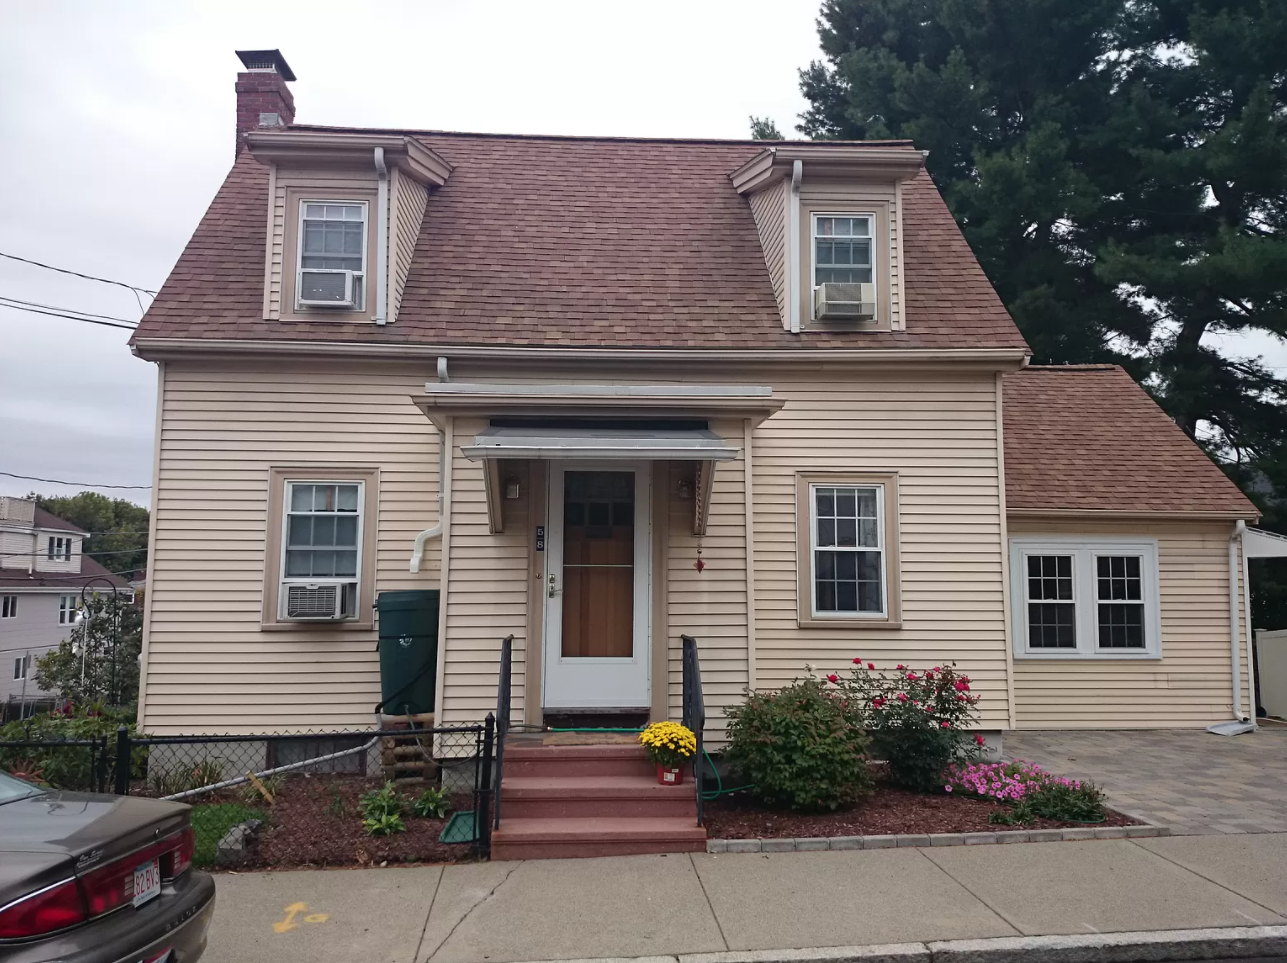 Home in Brighton, MA, get supplemental heating and air conditioning with ductless AC.